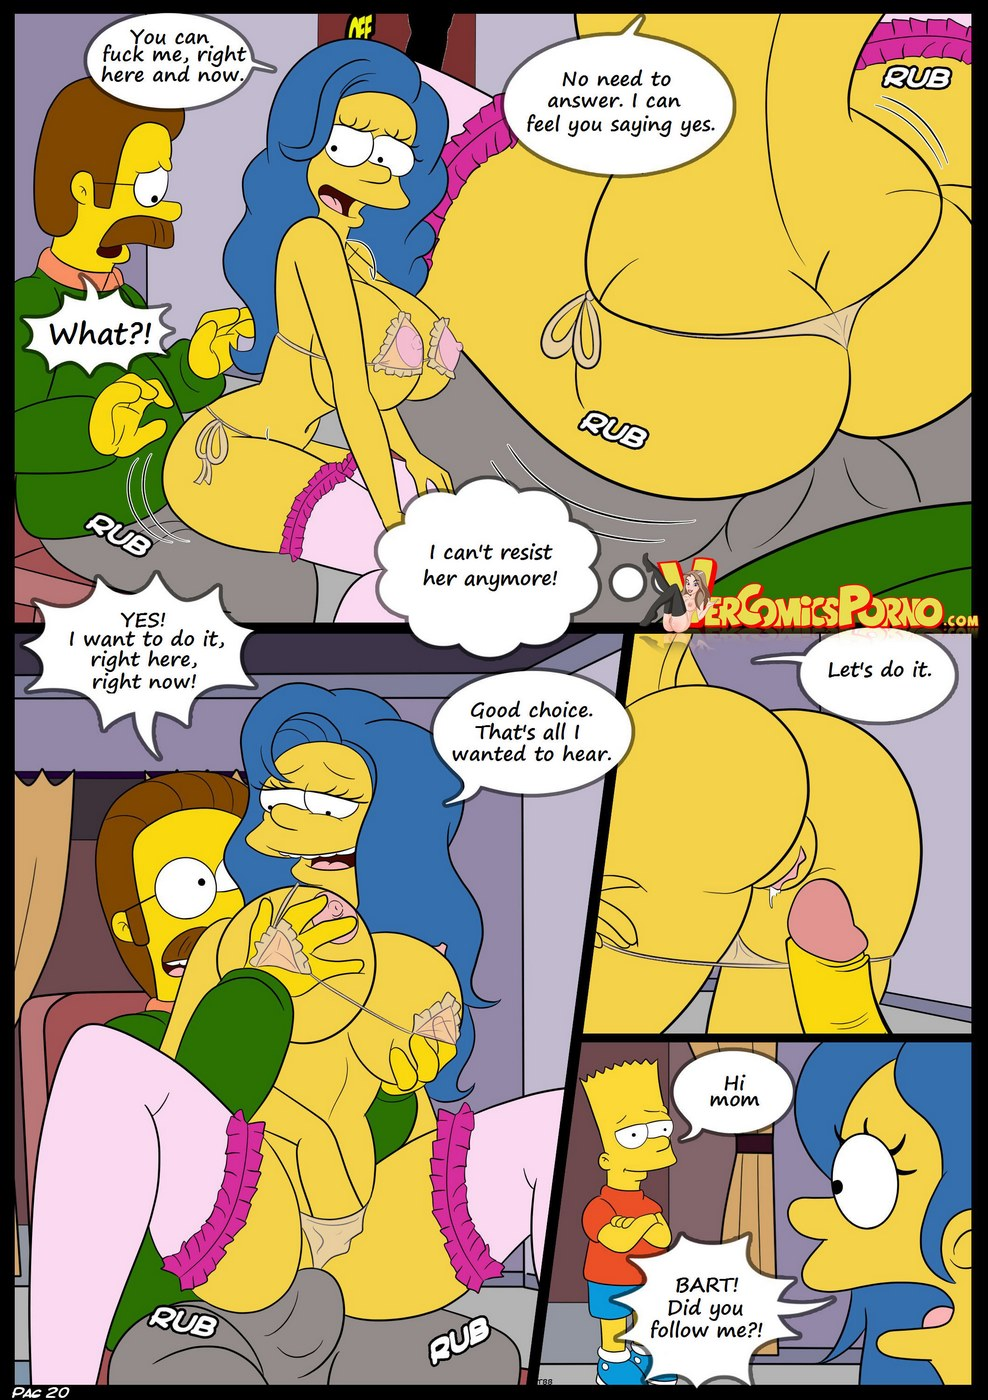 Homer is a lucky guy